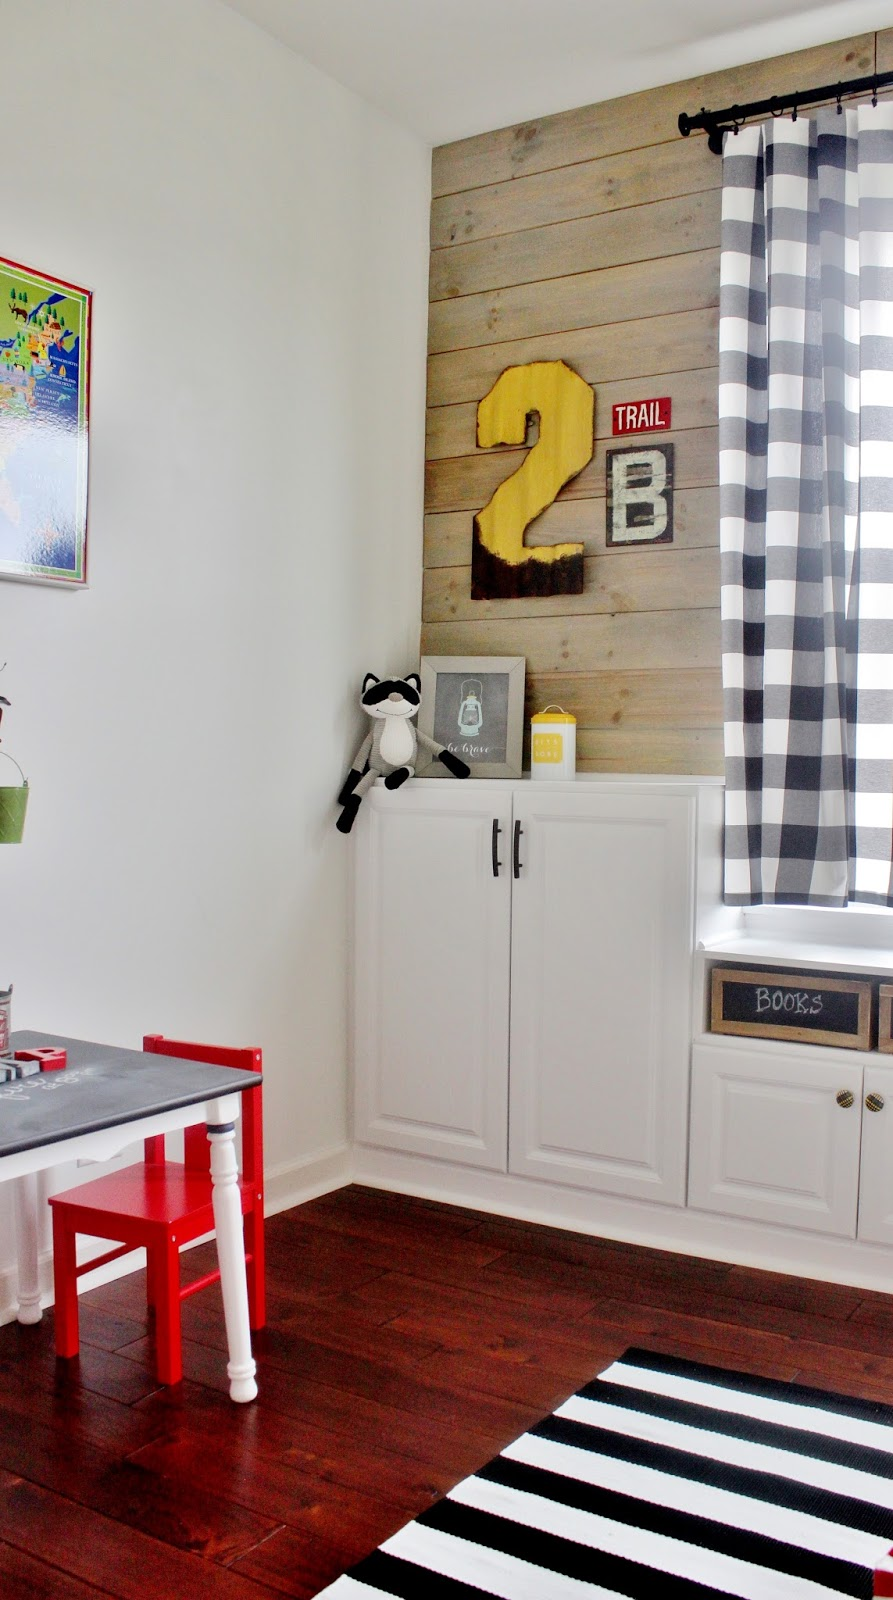 Playroom Remodel With Built In Storage Cabinets By Delightfully Noted  Featured On Remodelaholic